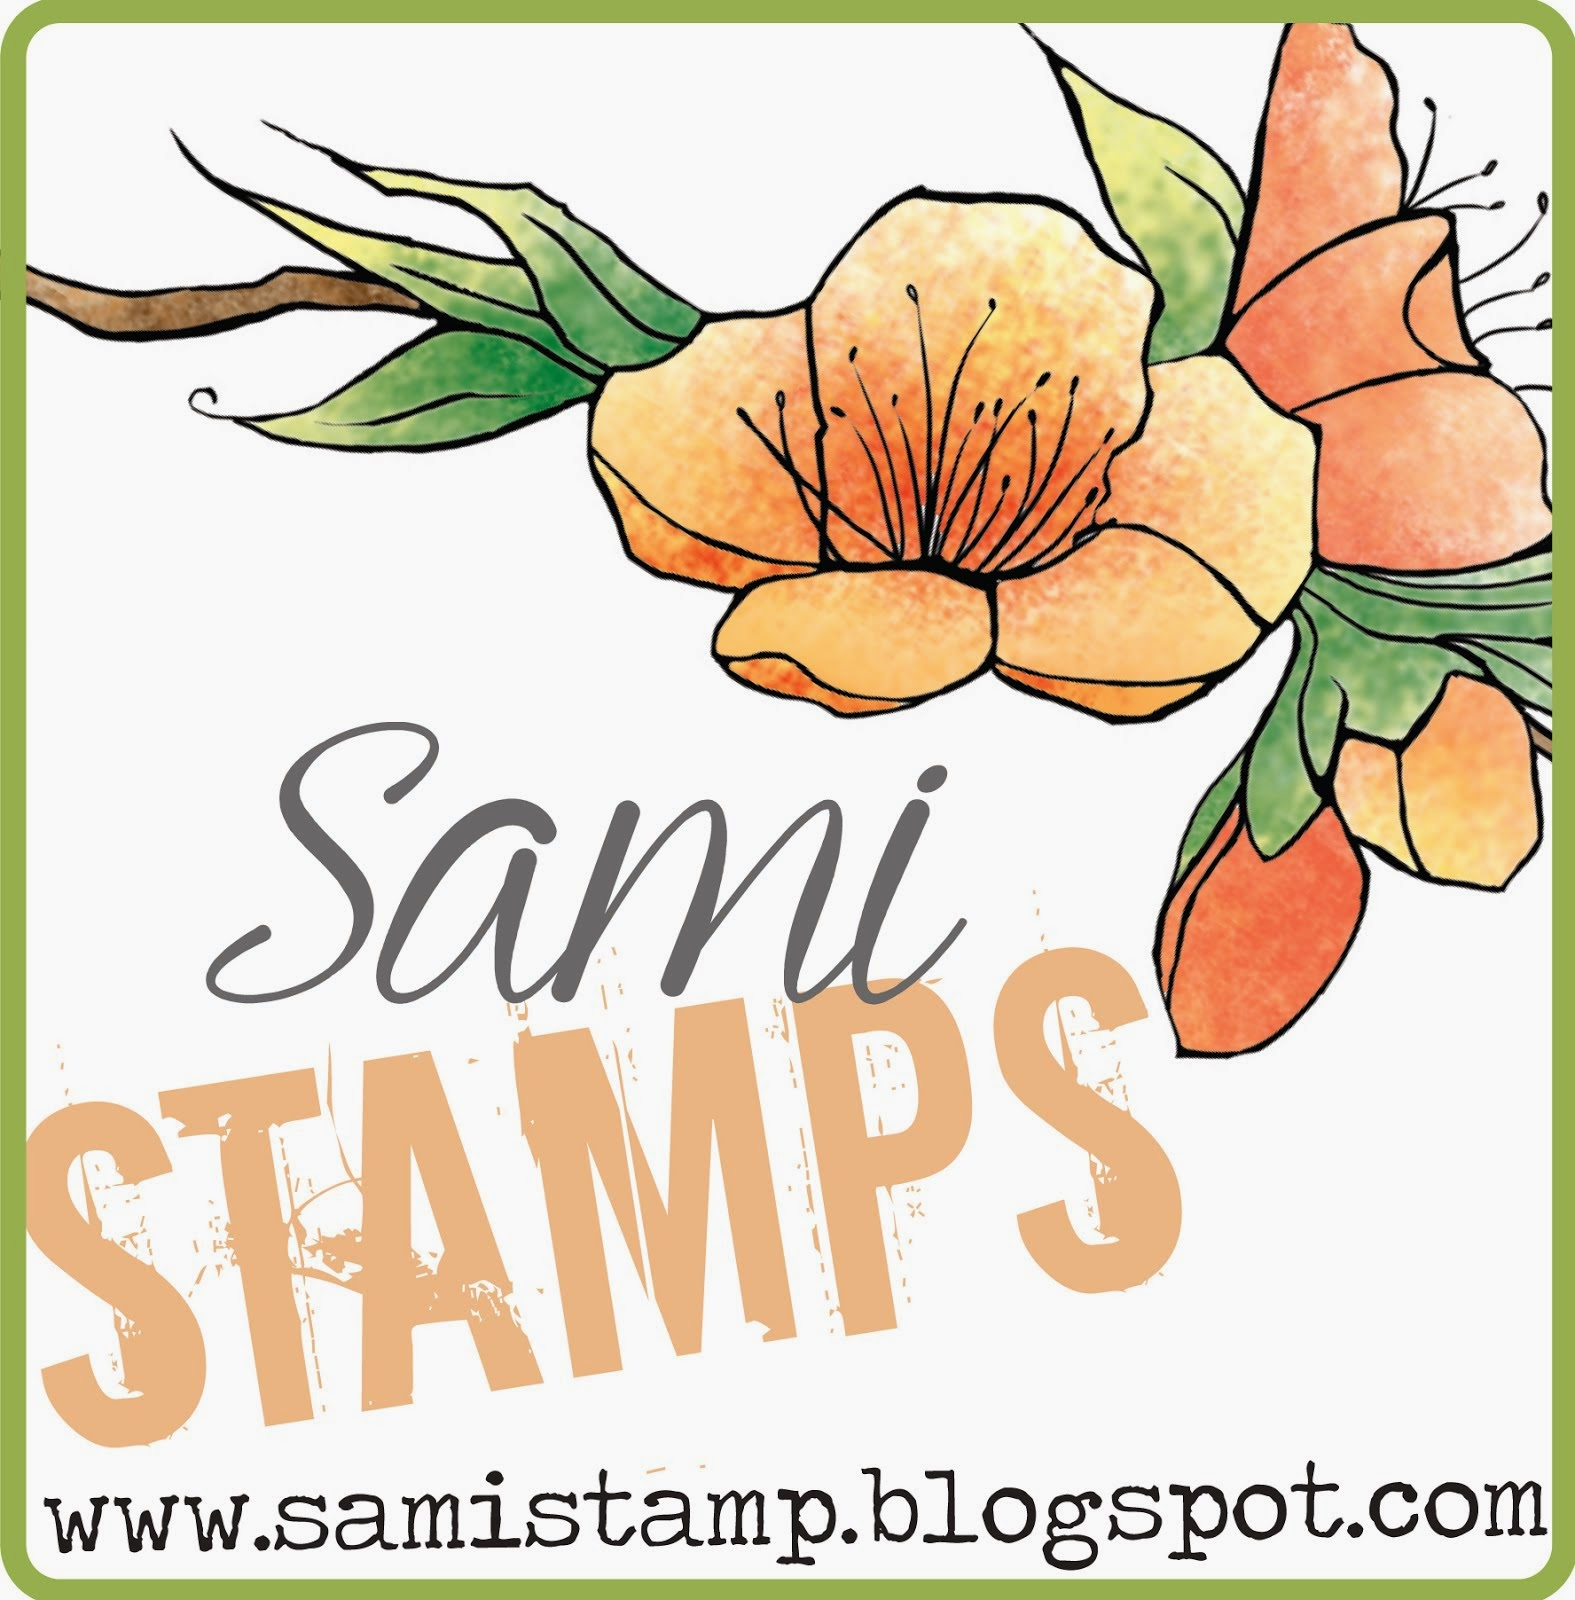 https://www.etsy.com/nl/shop/SamiStamps